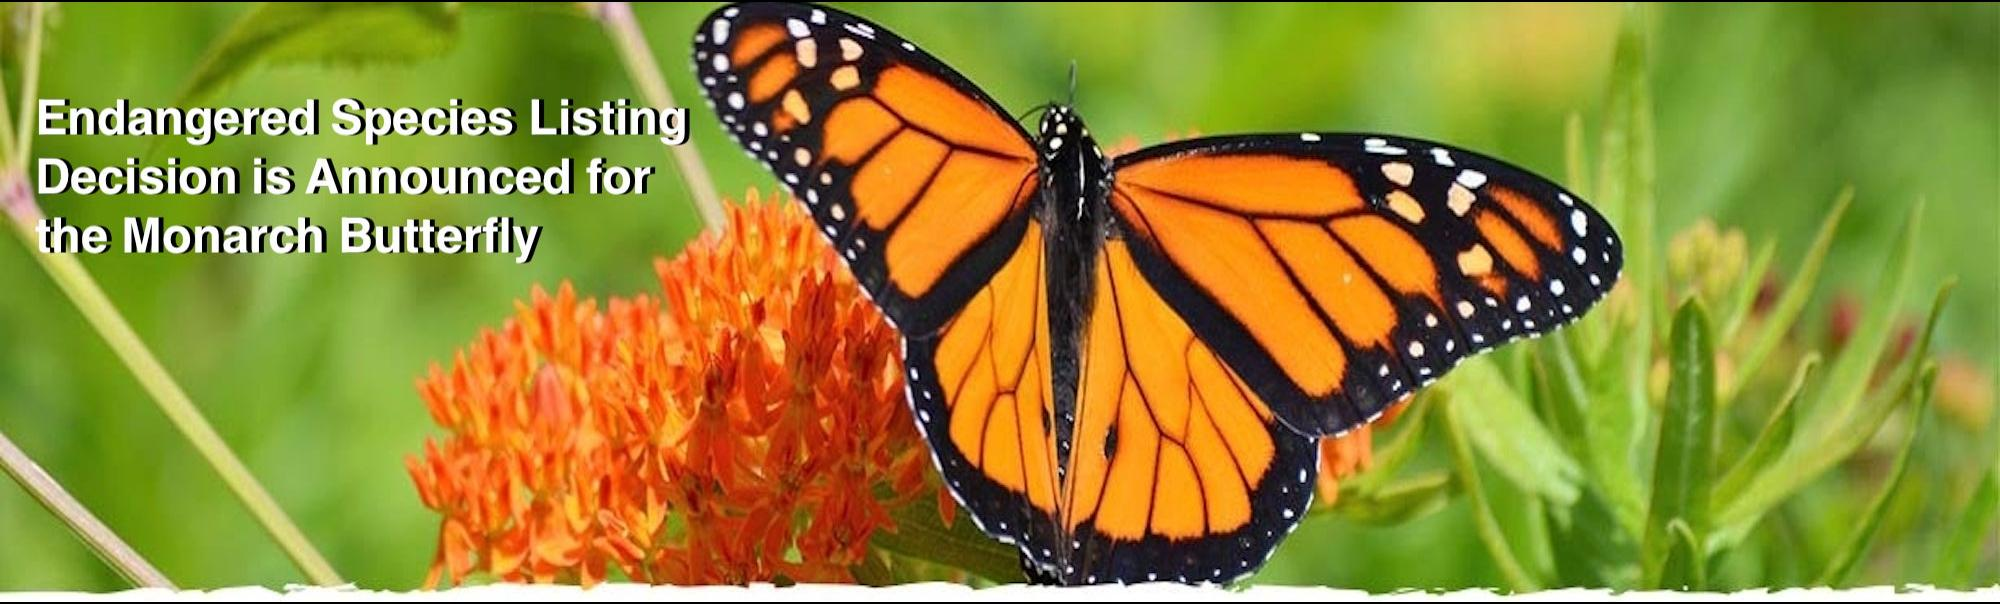 Endangered Species Listing Decision is Announced for the Monarch Butterfly